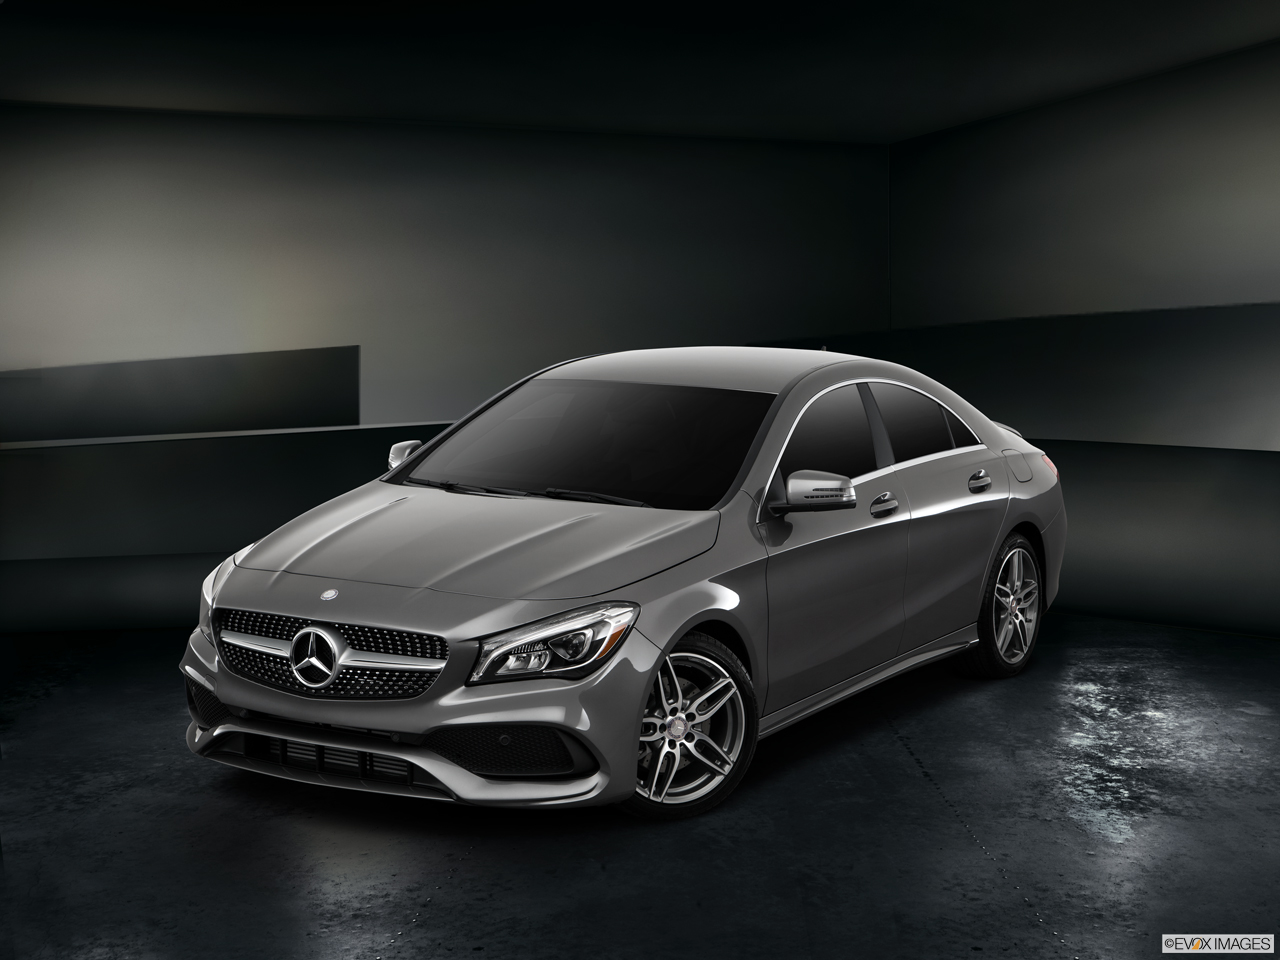 Mercedes benz cla class 2017 cla 250 4matic in egypt new for Mercedes benz cla 250 top speed